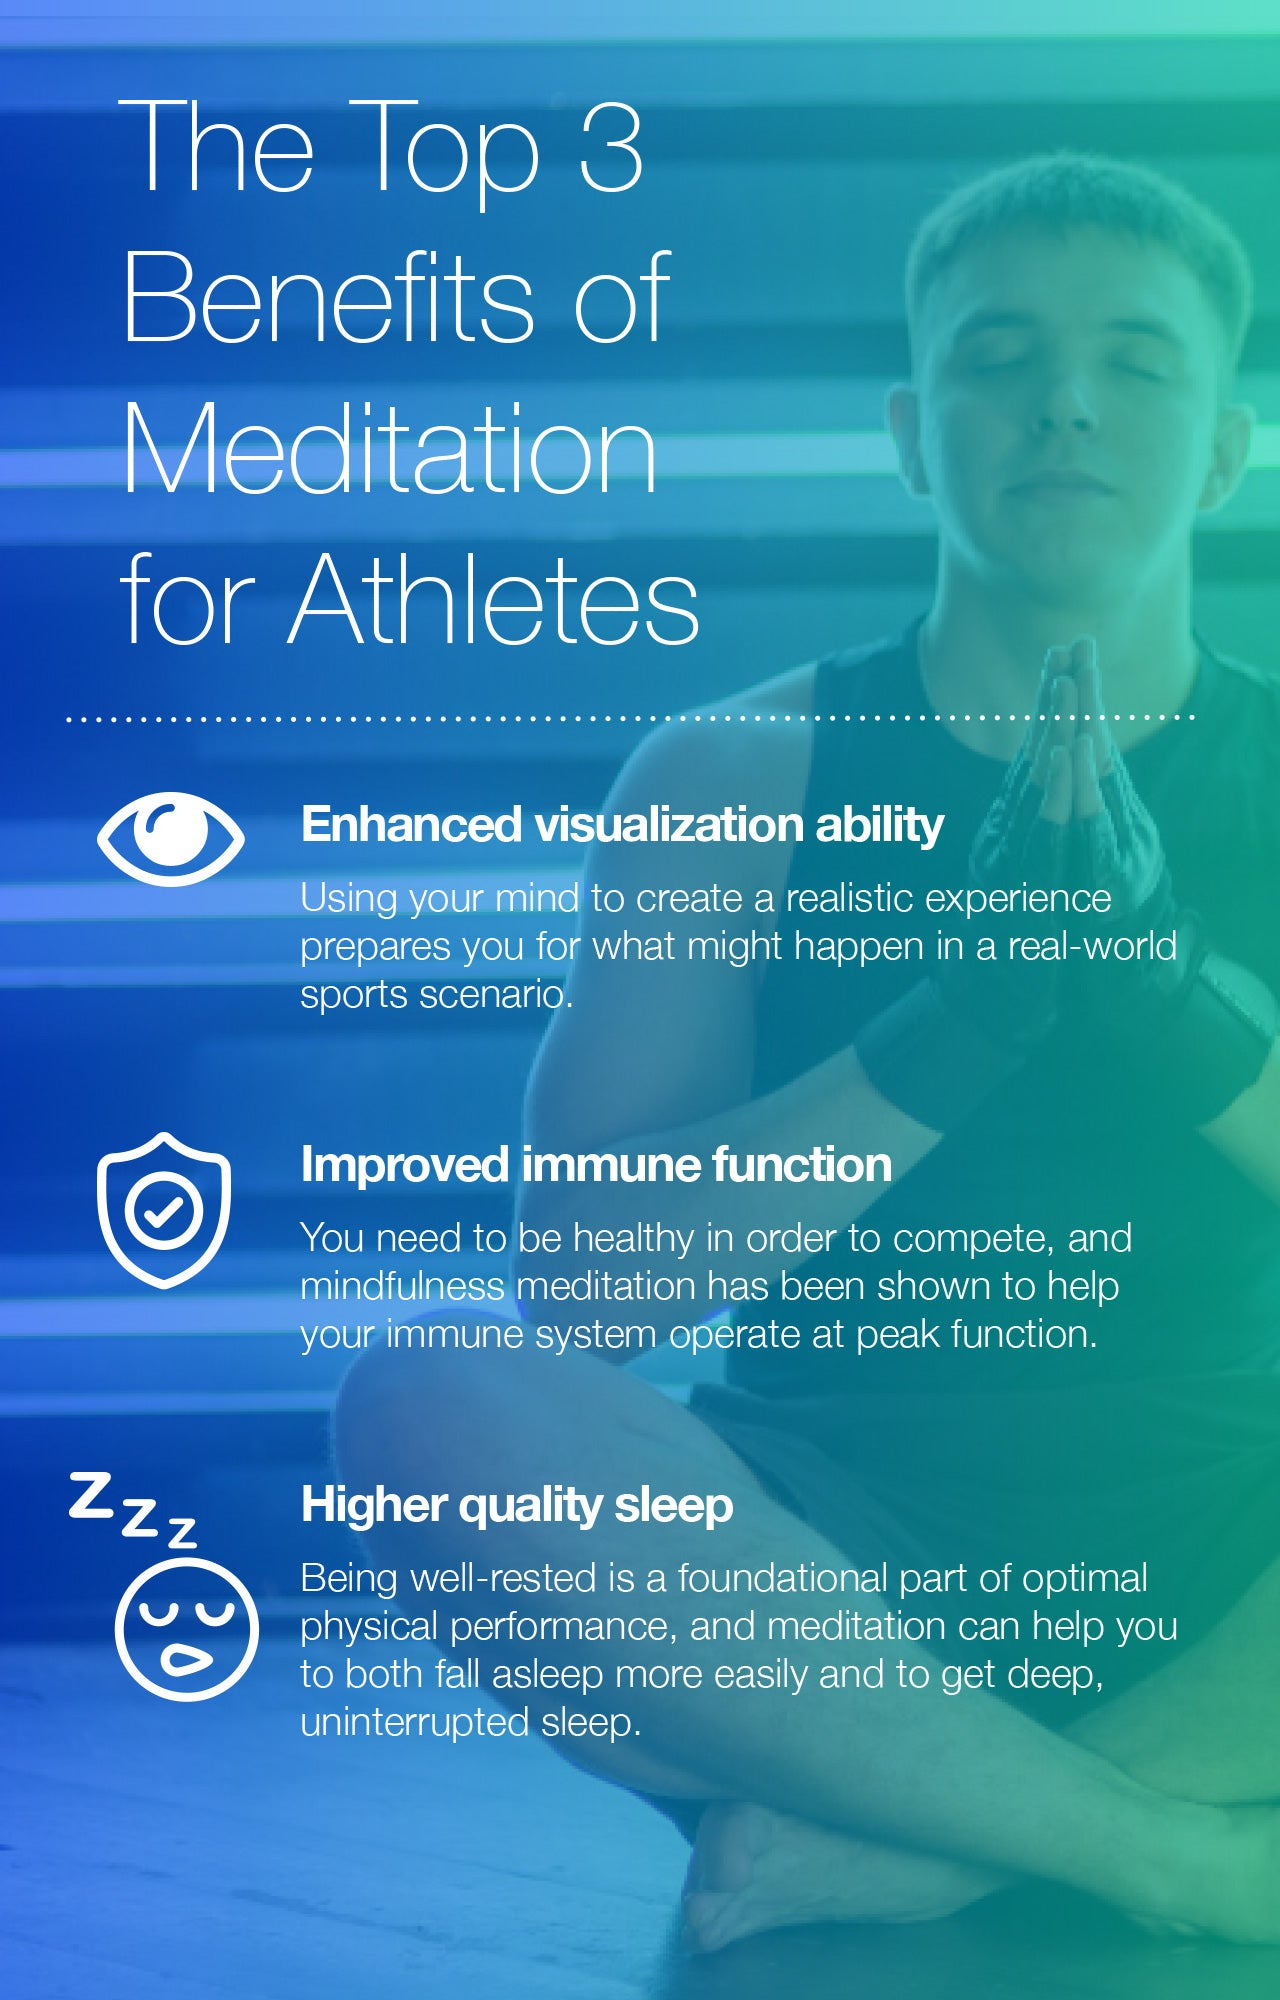 The Top 3 Benefits of Meditation for Athletes